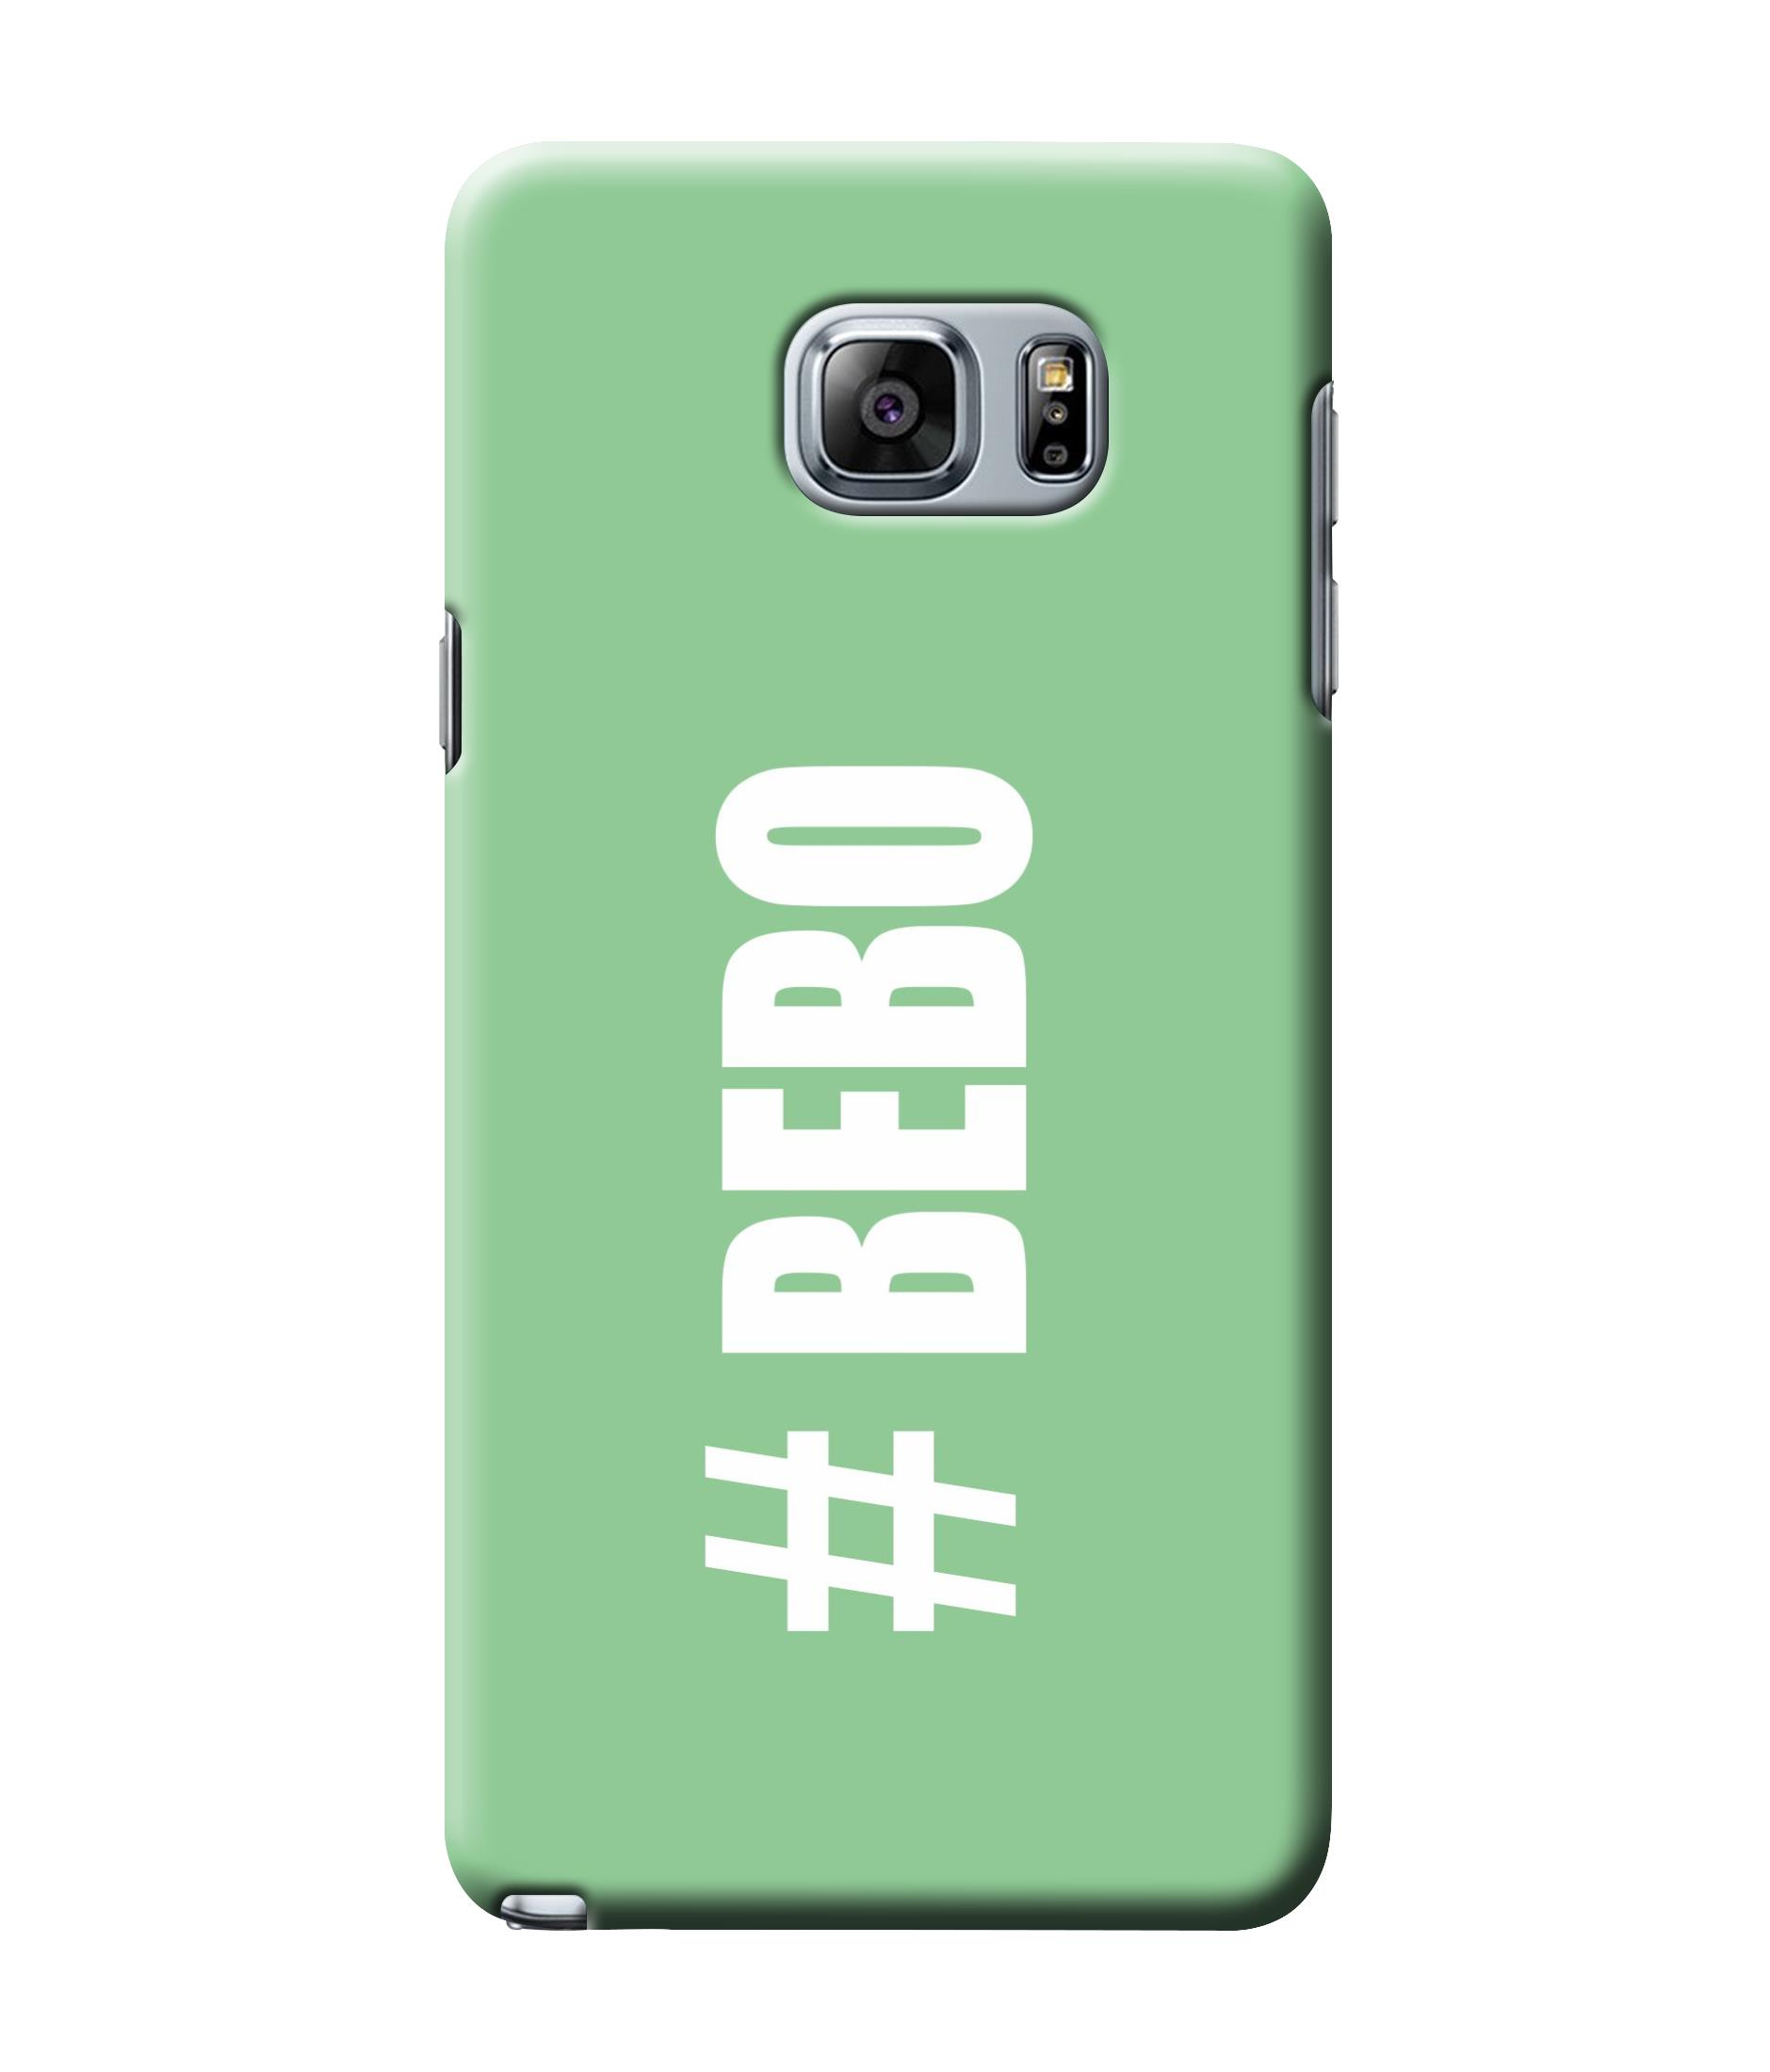 caseophile2 Samsung Galaxy Note 5 Bebo Green Mobile Case